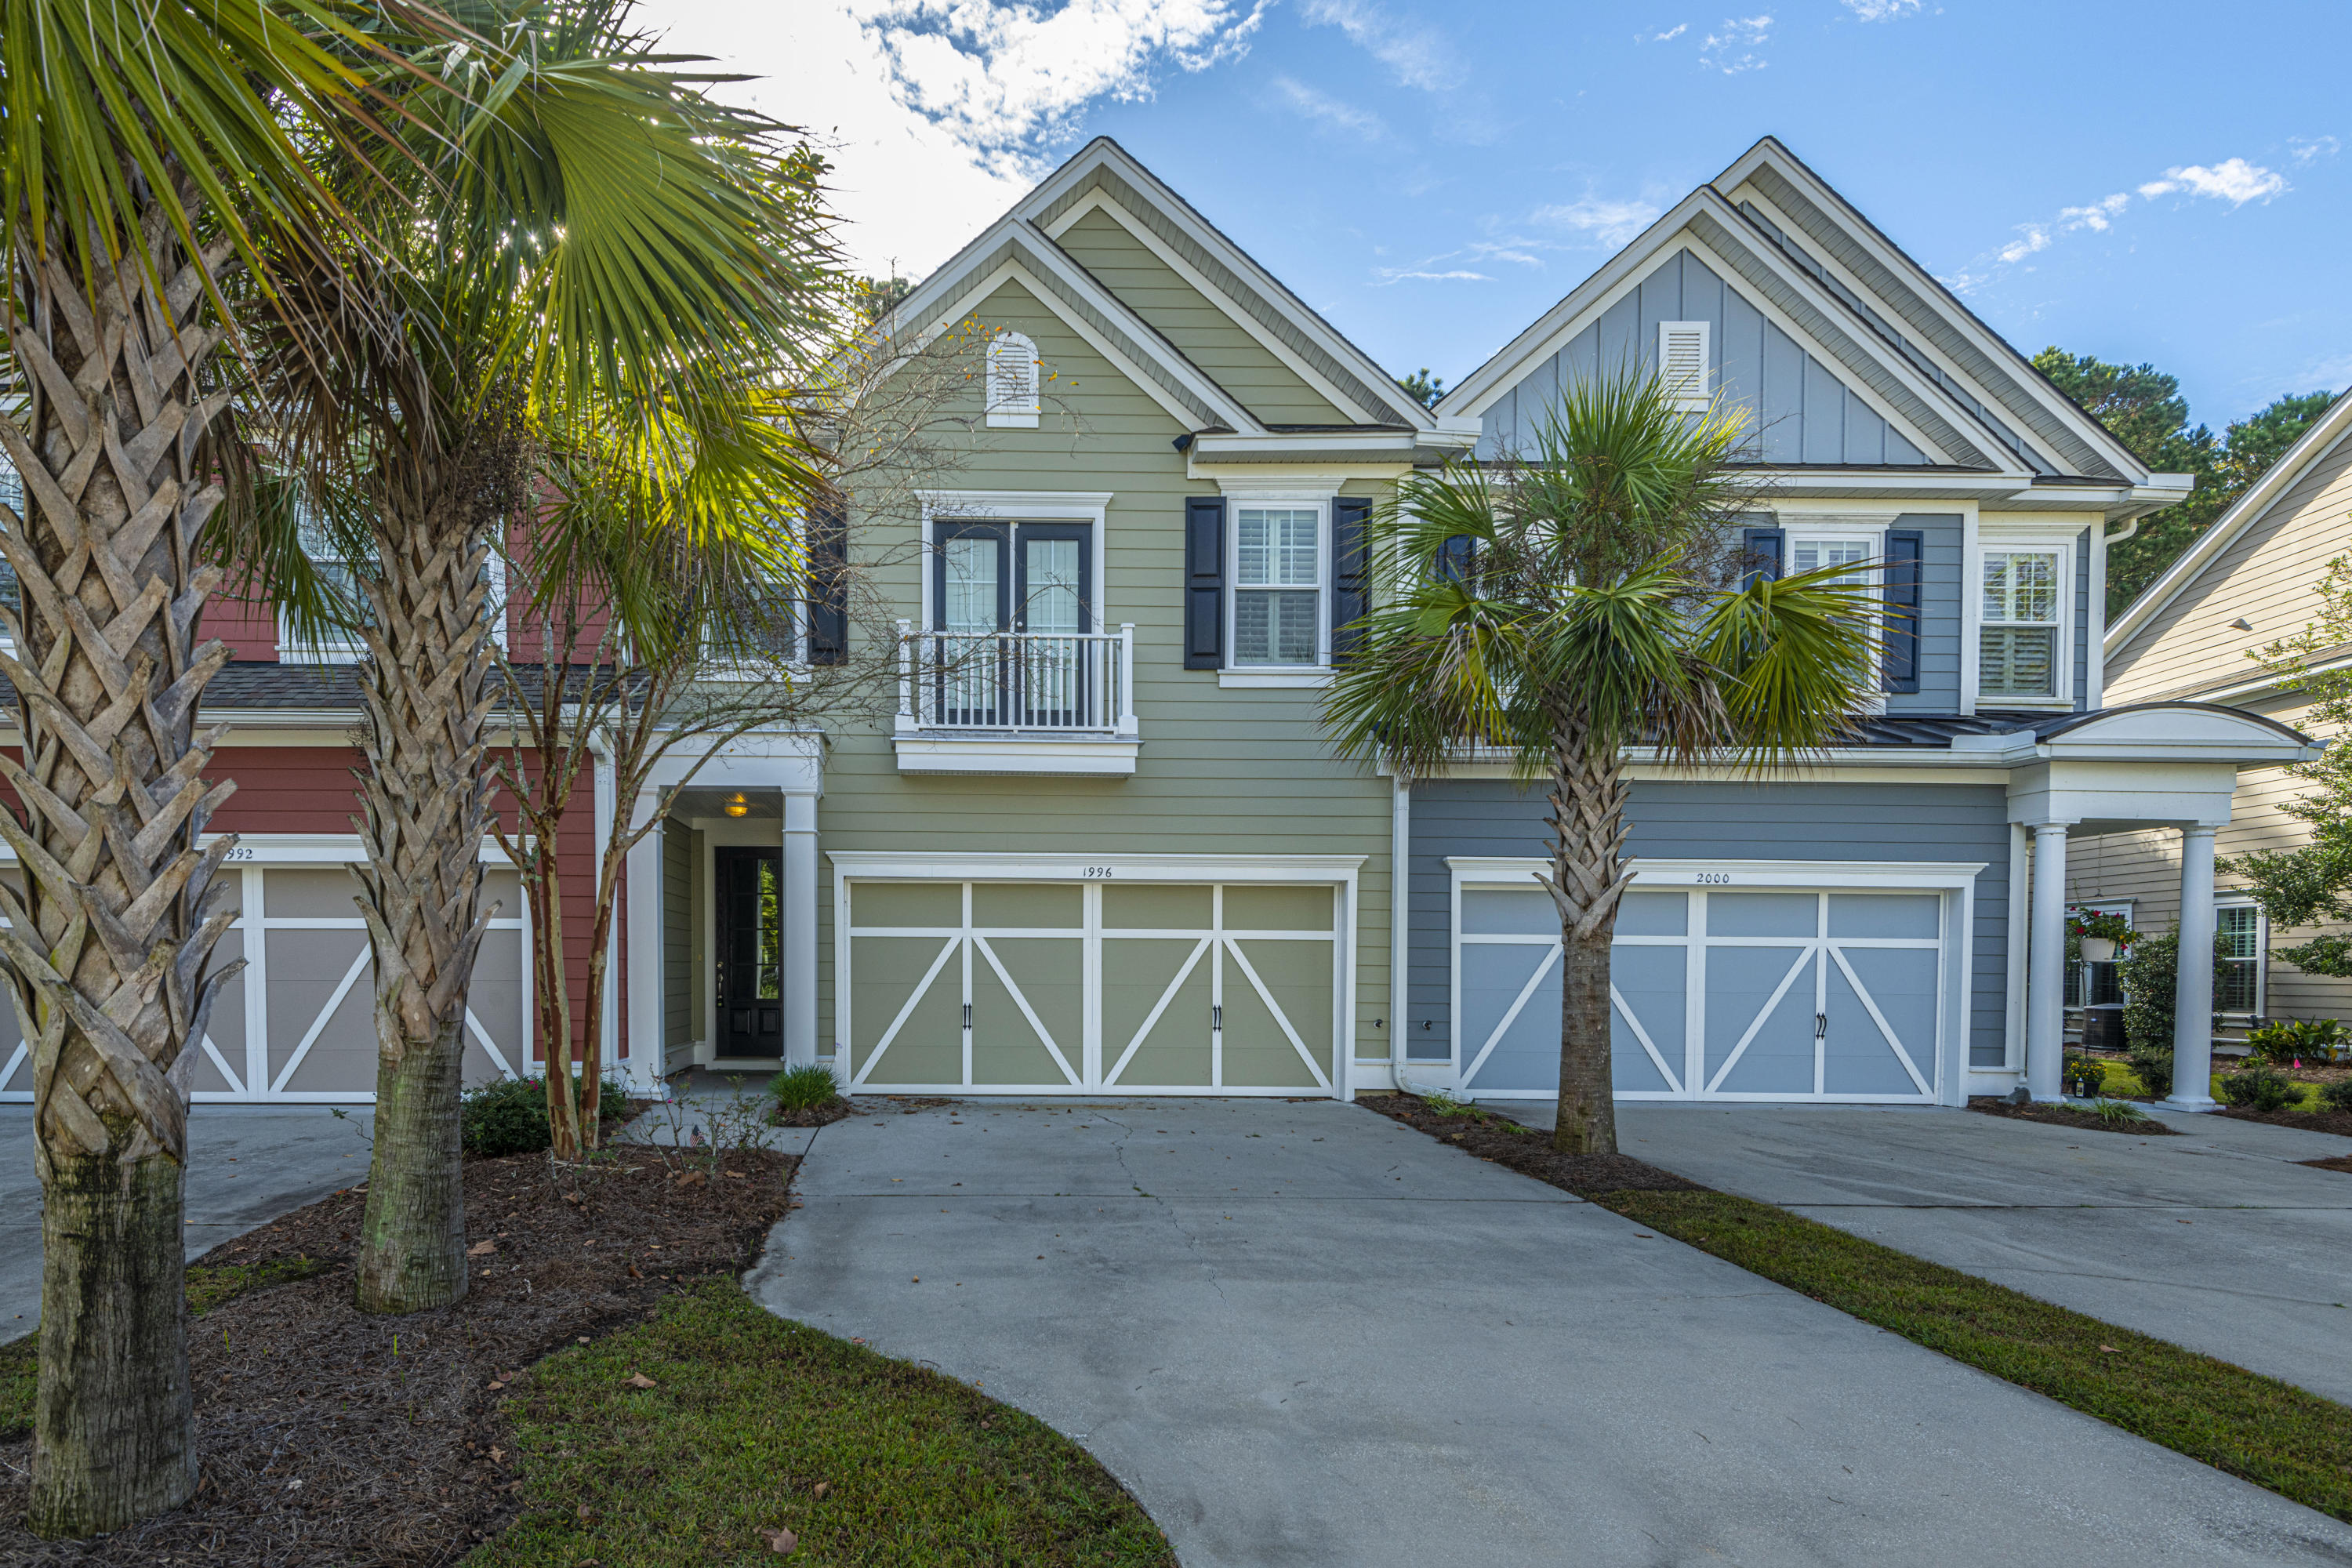 Dunes West Homes For Sale - 1996 Kings Gate, Mount Pleasant, SC - 14